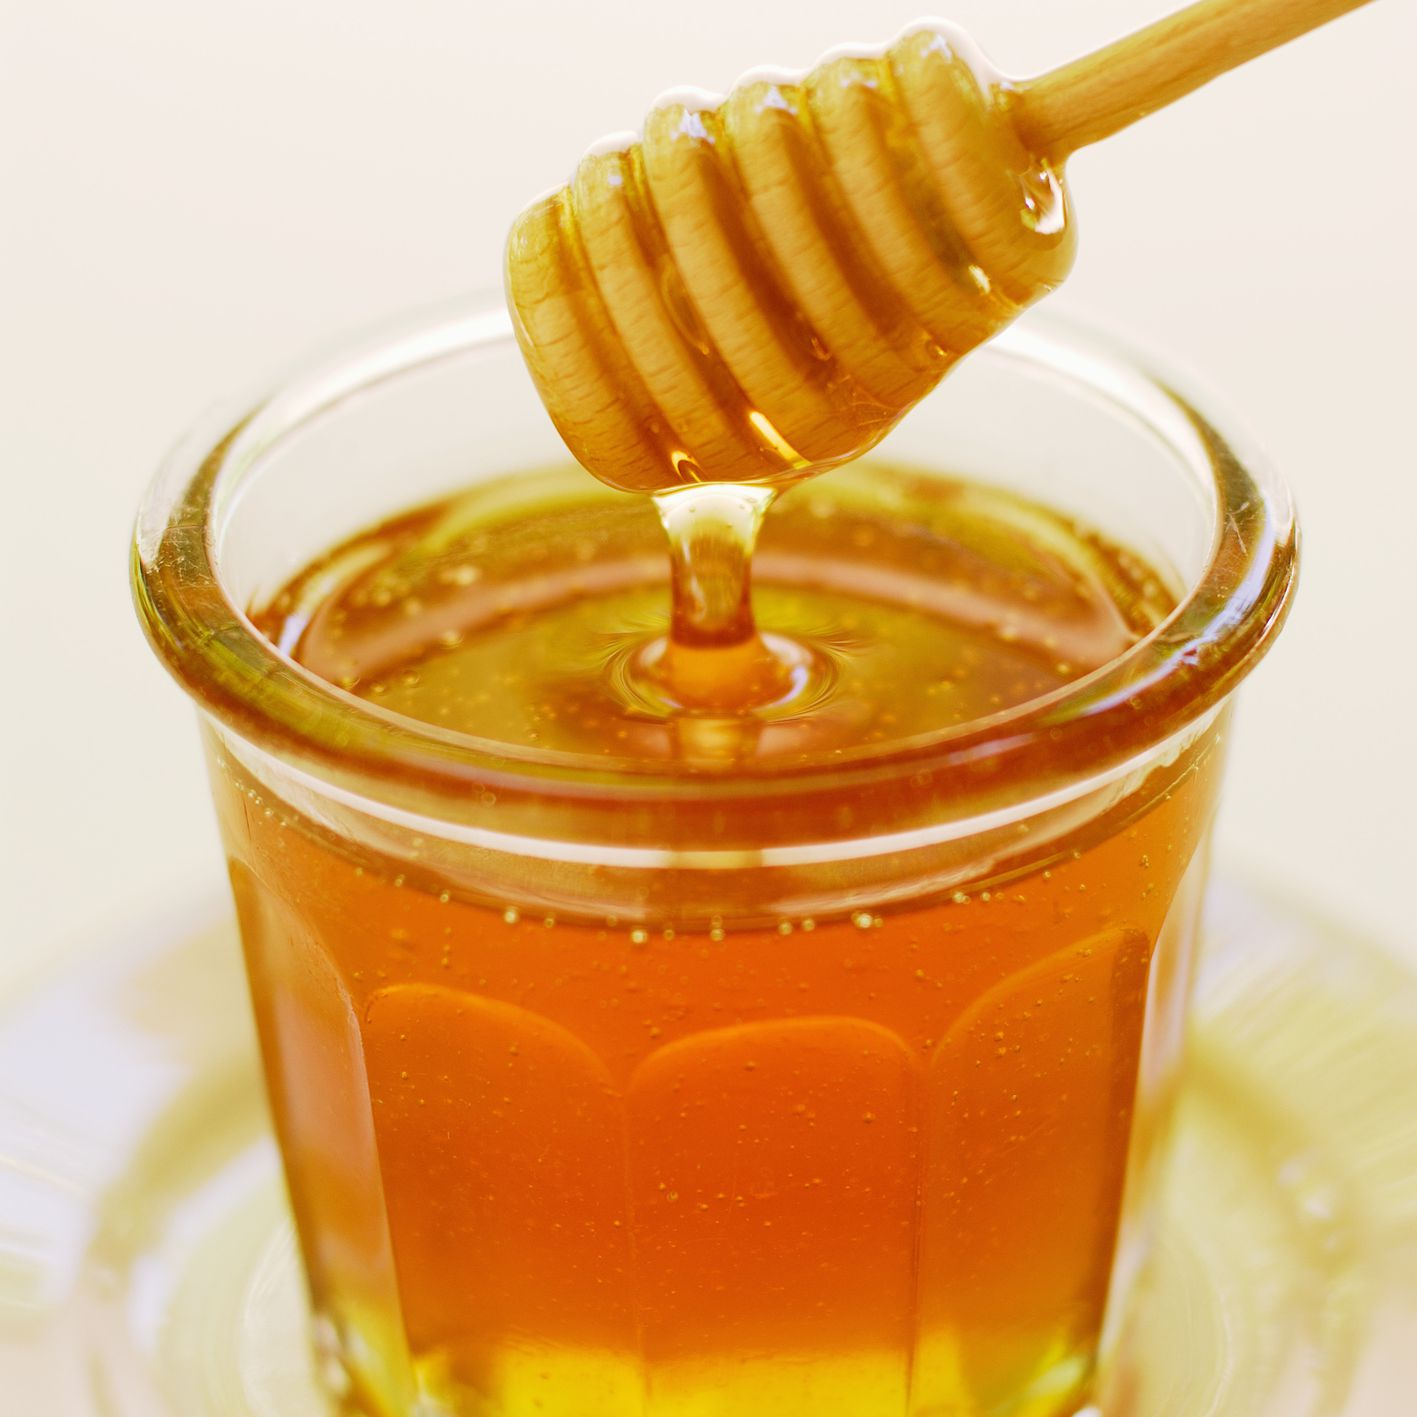 Clover honey in a jar with dipper